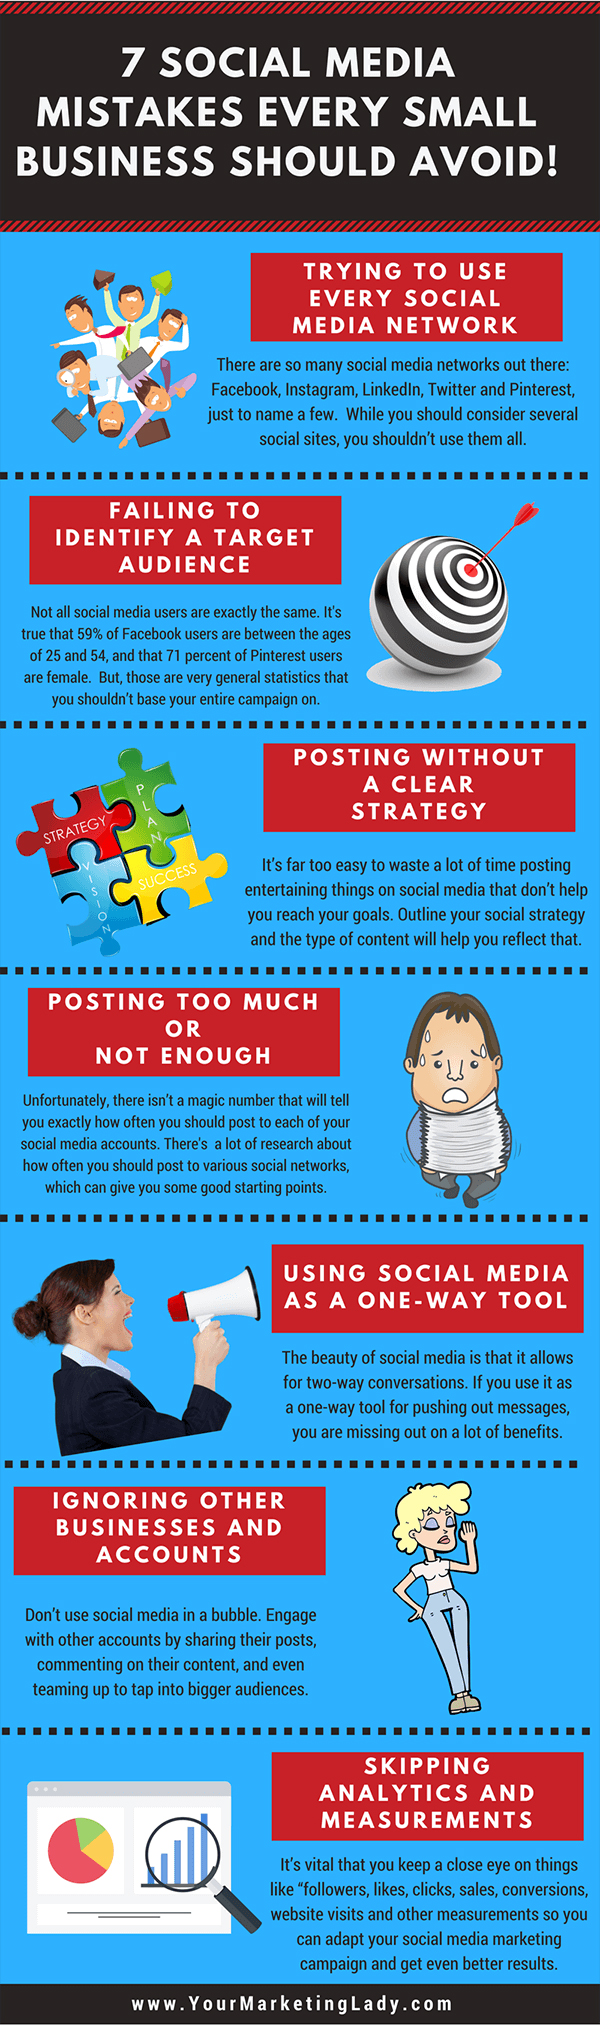 Infographic: Social Media Mistakes